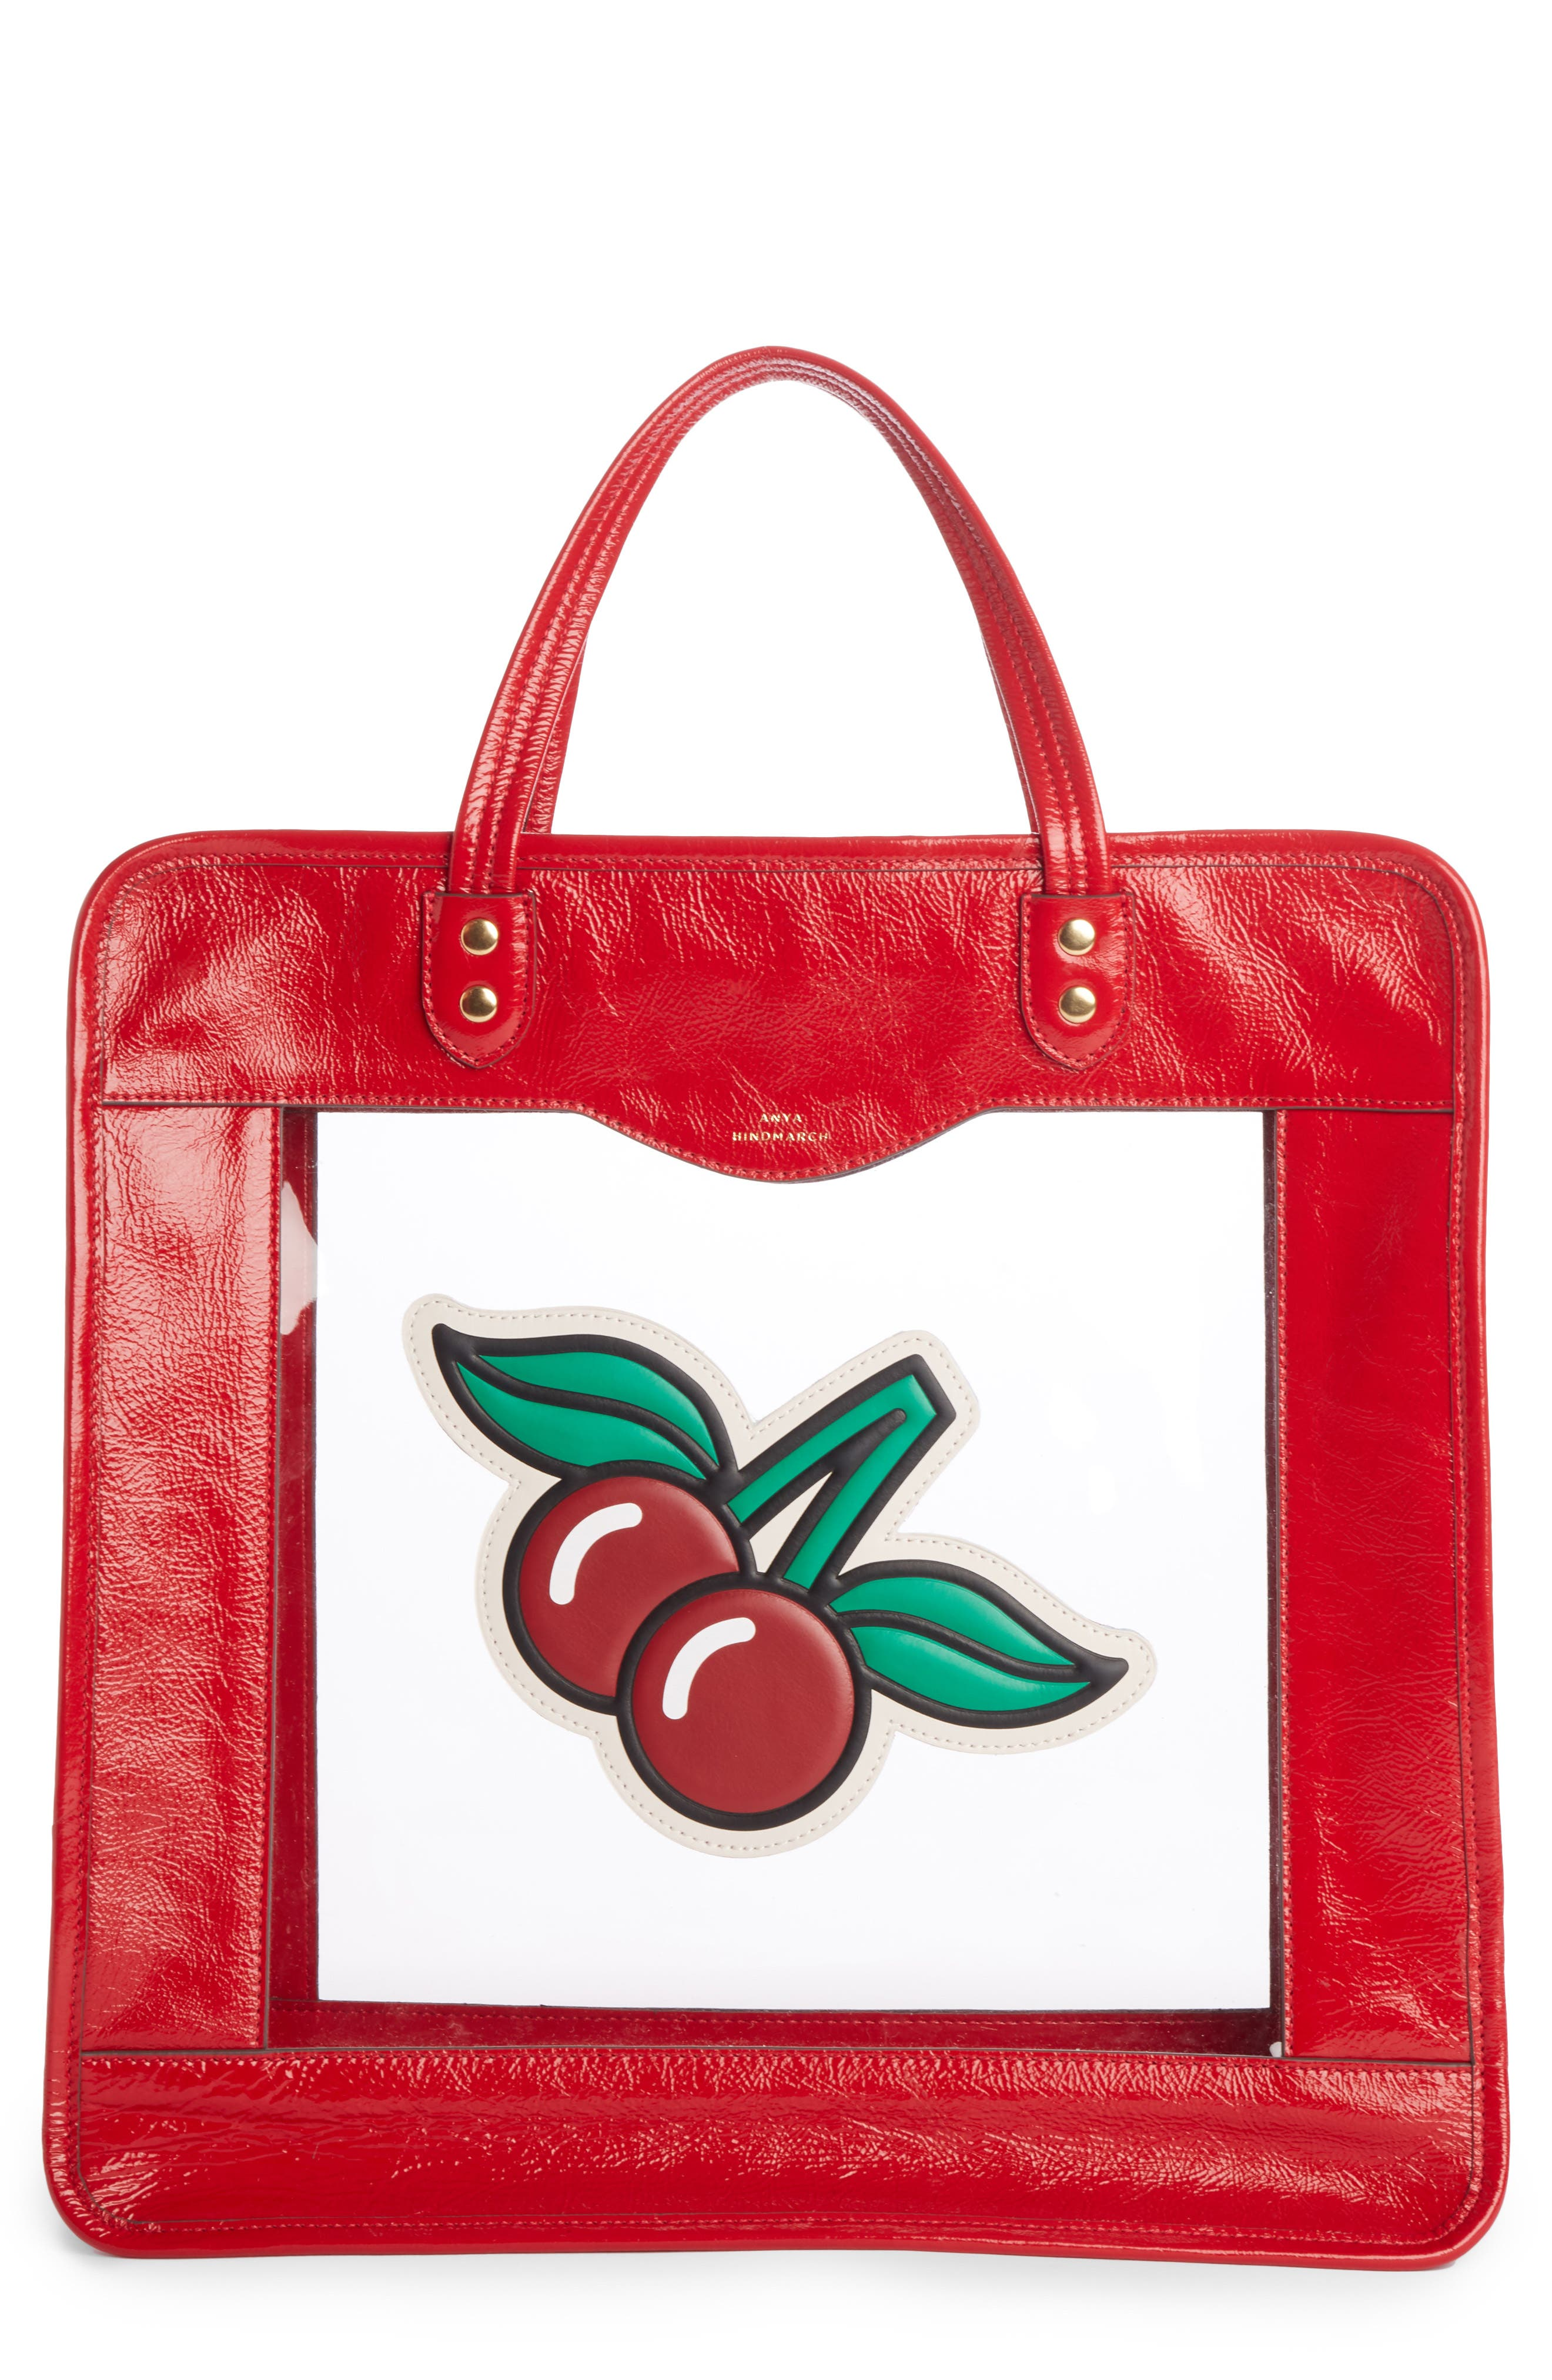 Rainy Day Cherries Tote,                         Main,                         color, Red